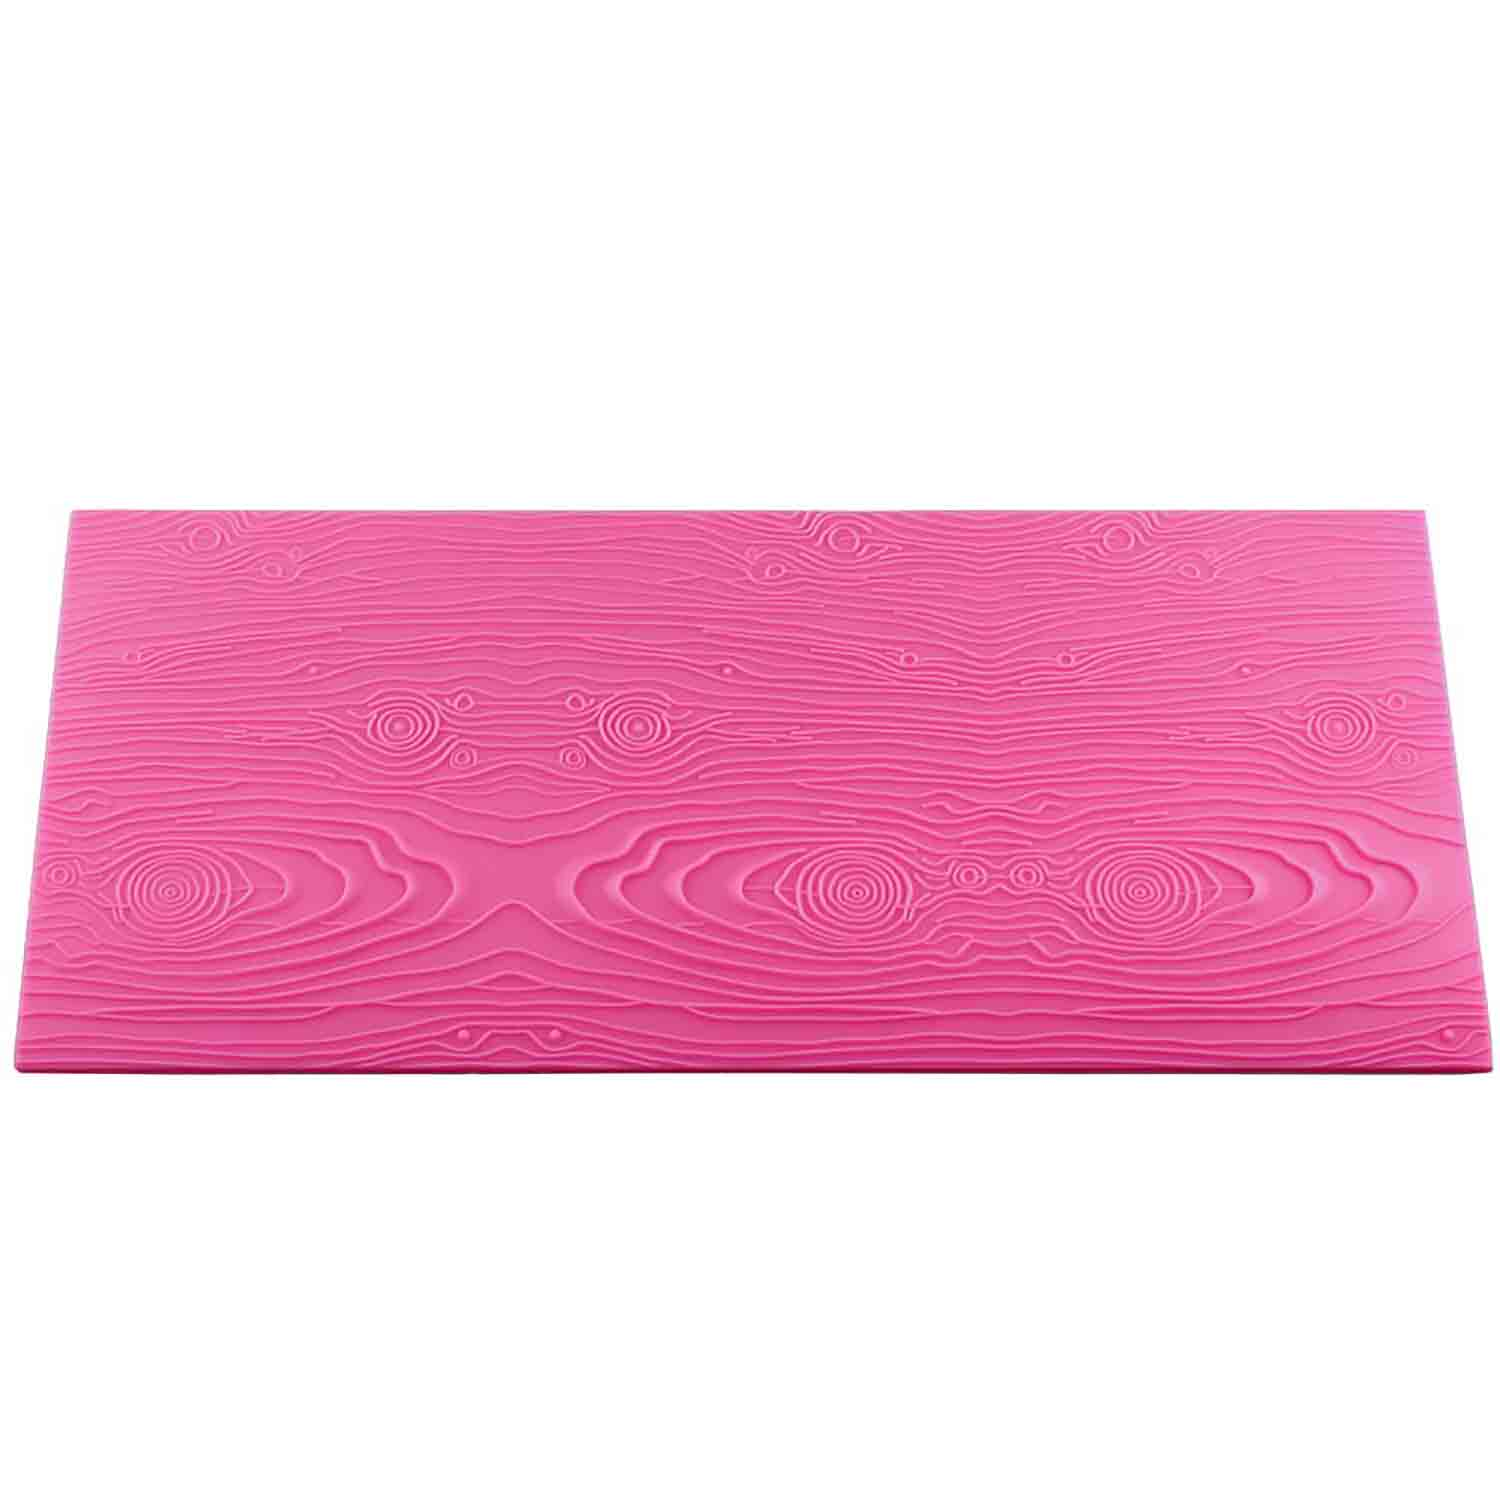 Wood Grain Silicone Texture Mat